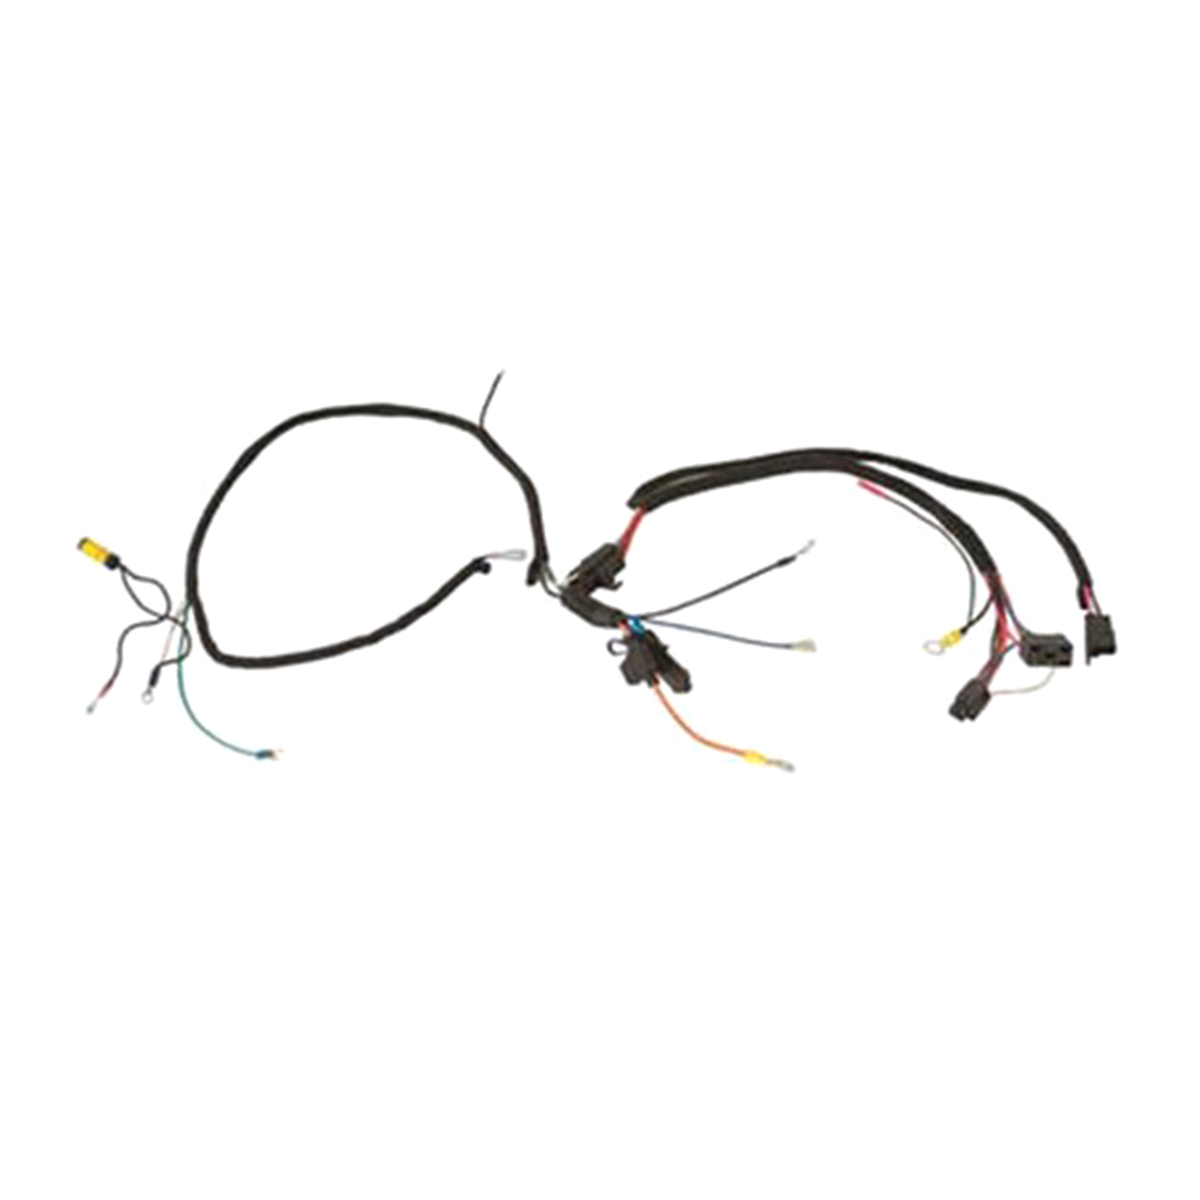 500028 500030 dixie chopper kohler generac wiring harness chopper wiring harness at gsmx.co